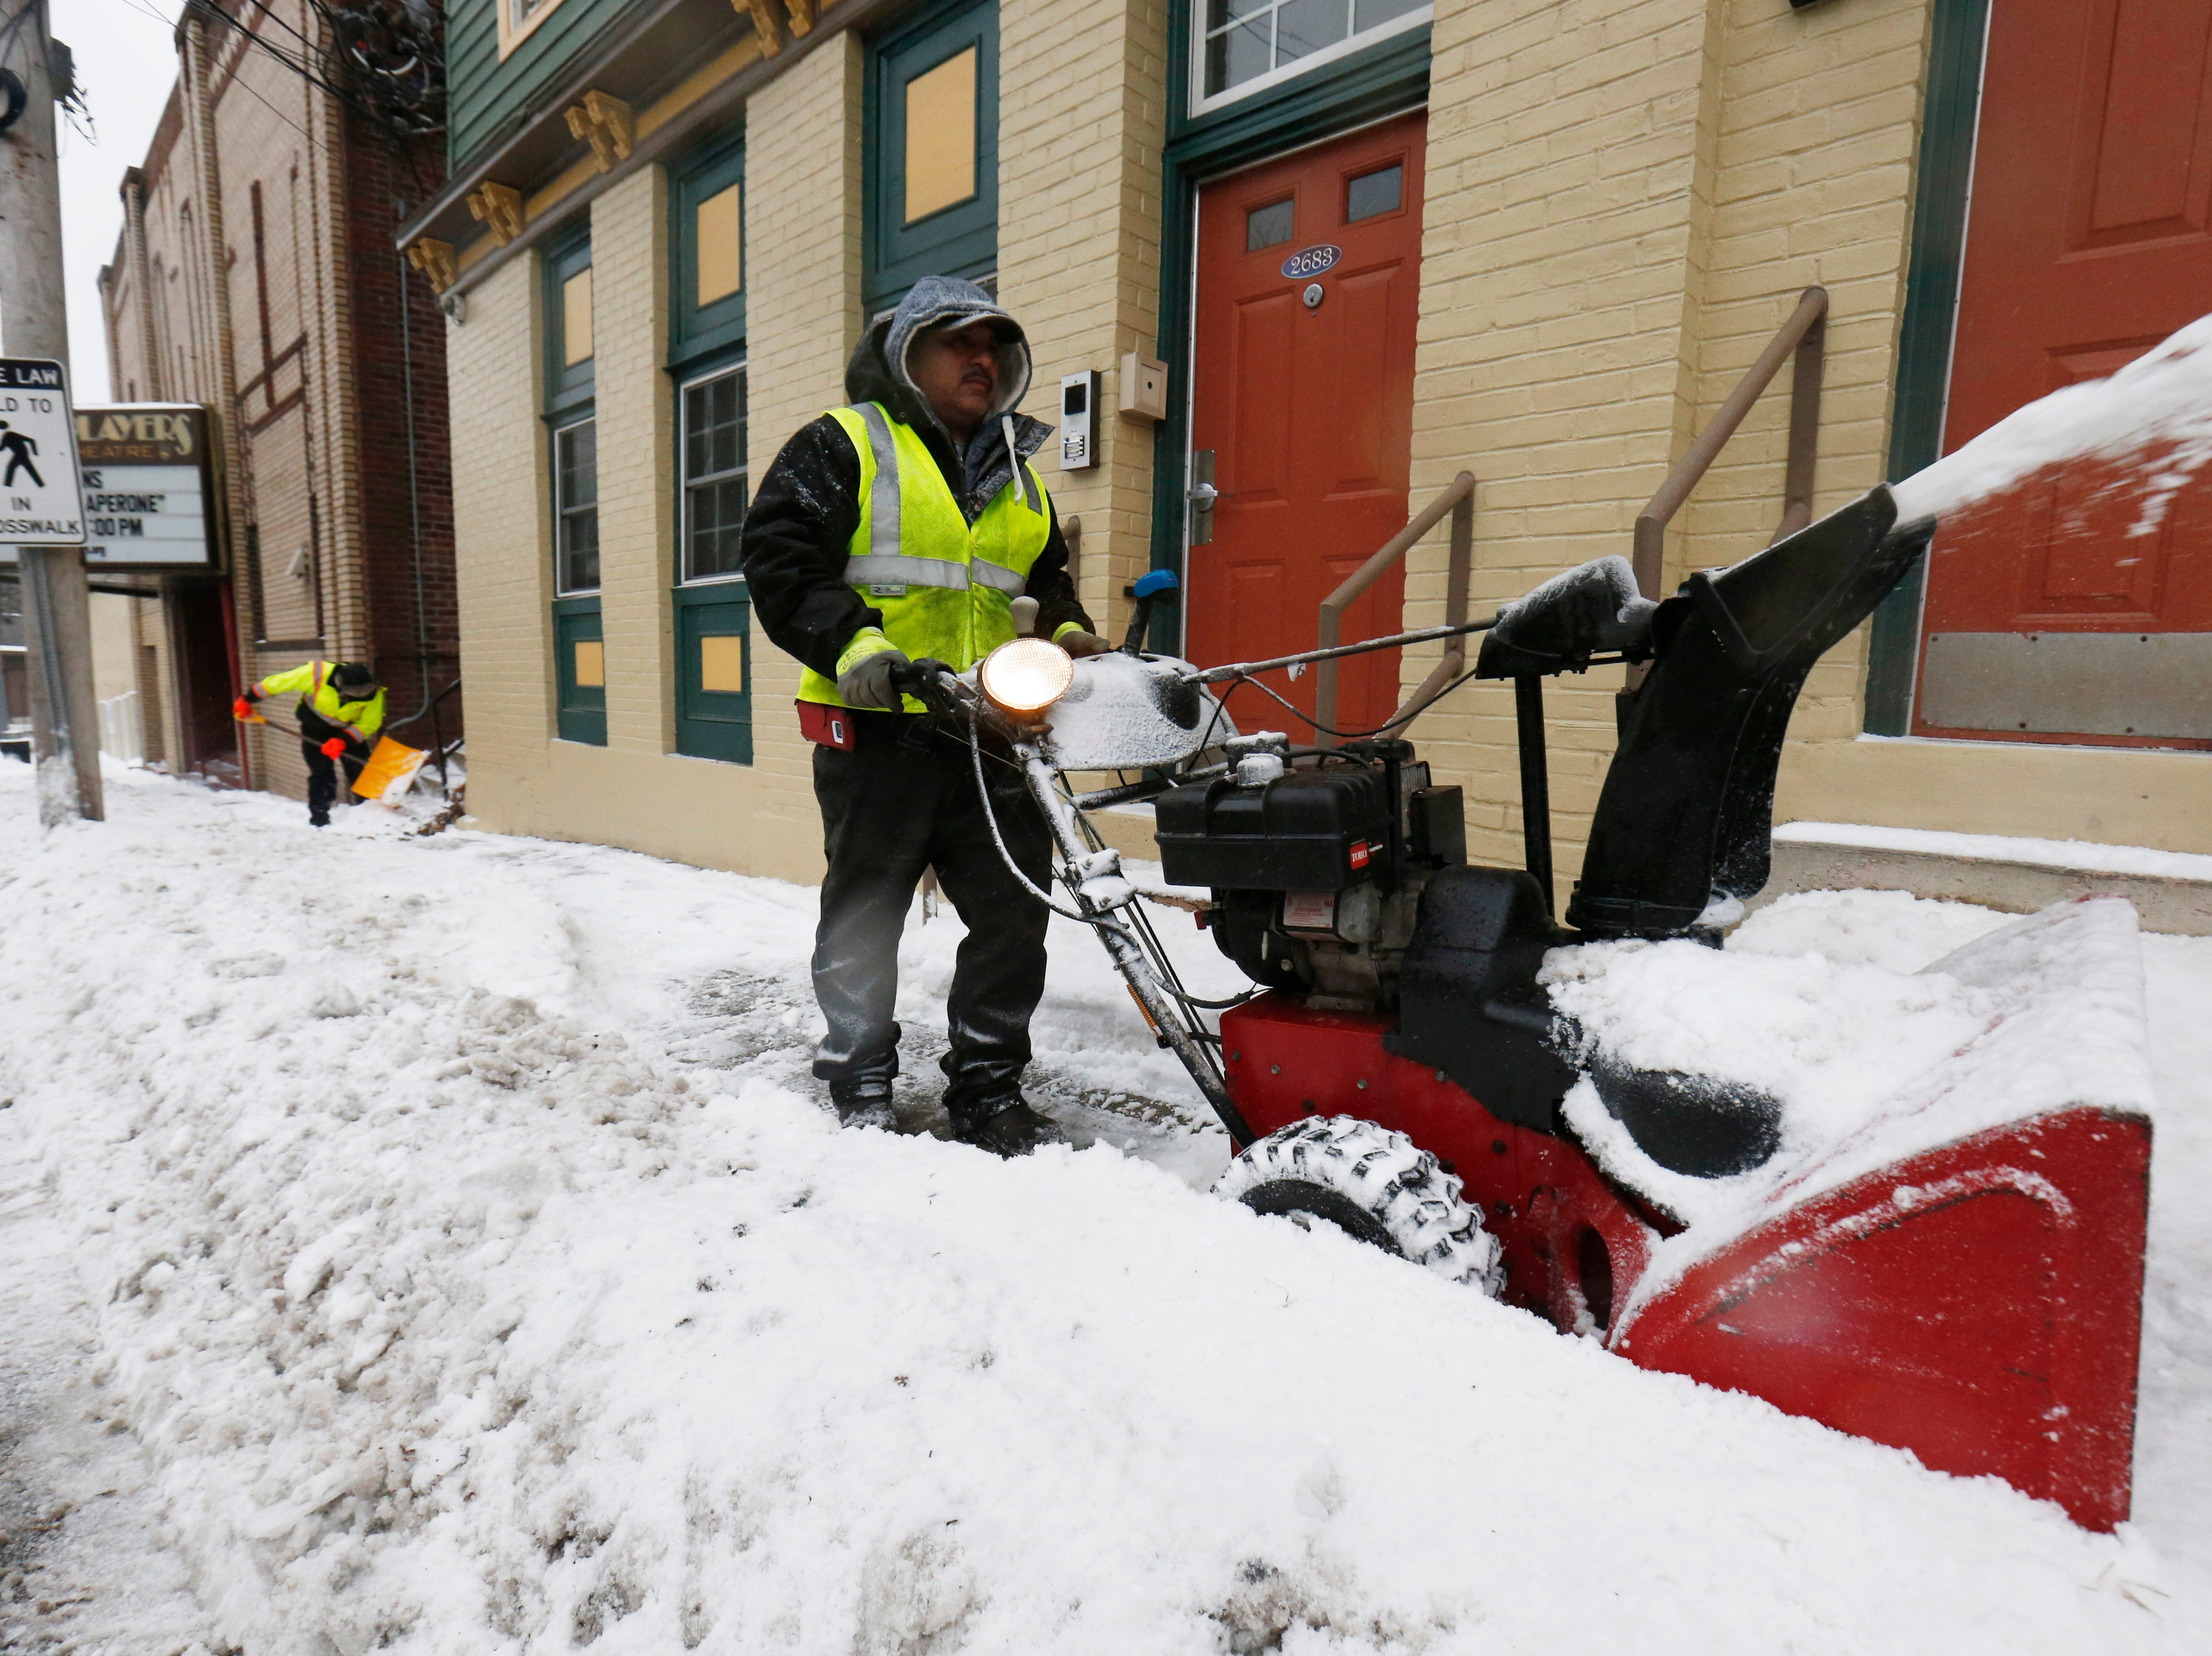 Mauricio Sibada clears the sidewalk as Christian Galindo works to clear steps along West Main Street in the Village of Wappingers Falls on January 20, 2019.